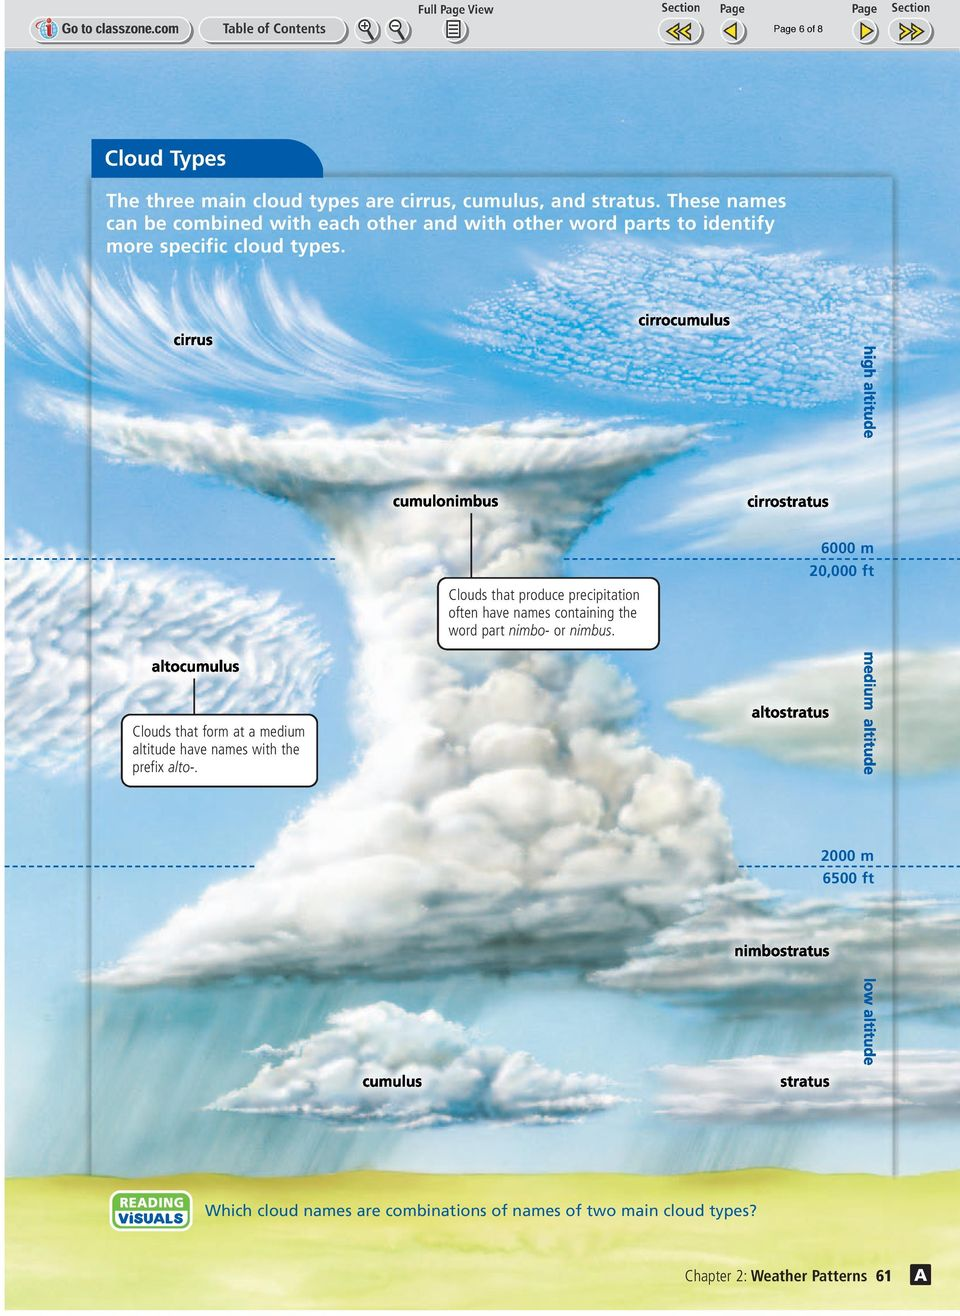 Clouds that produce precipitation often have names containing the word part nimbo- or nimbus.